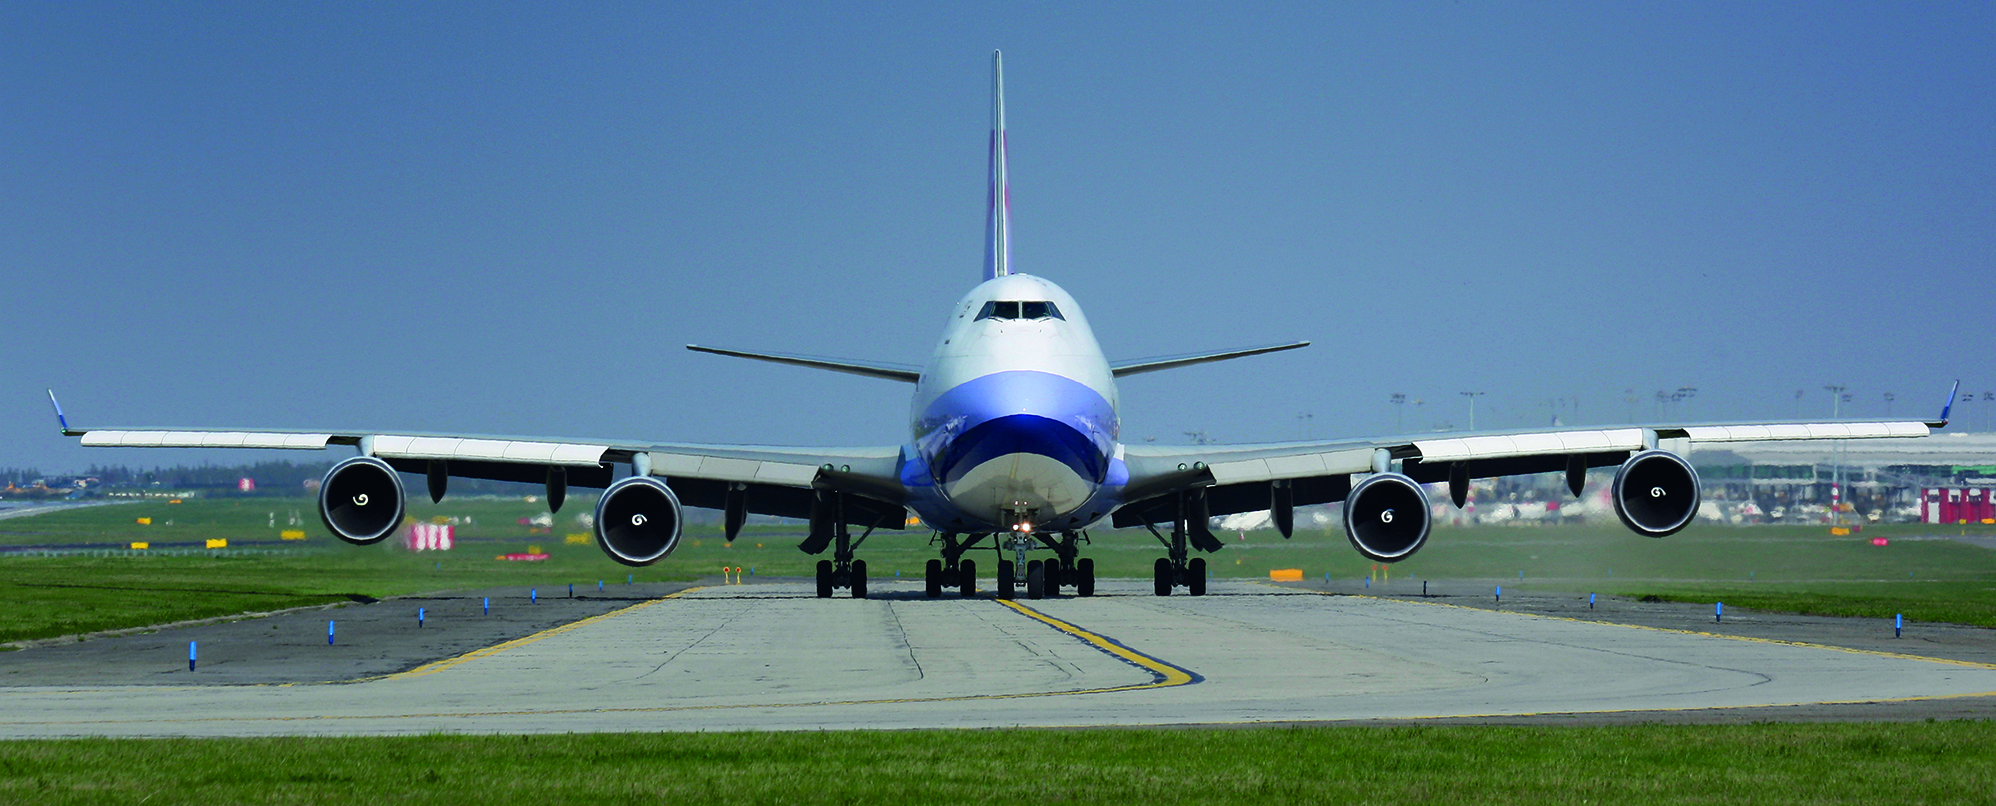 Huge cargo plane taxi to runway for take off